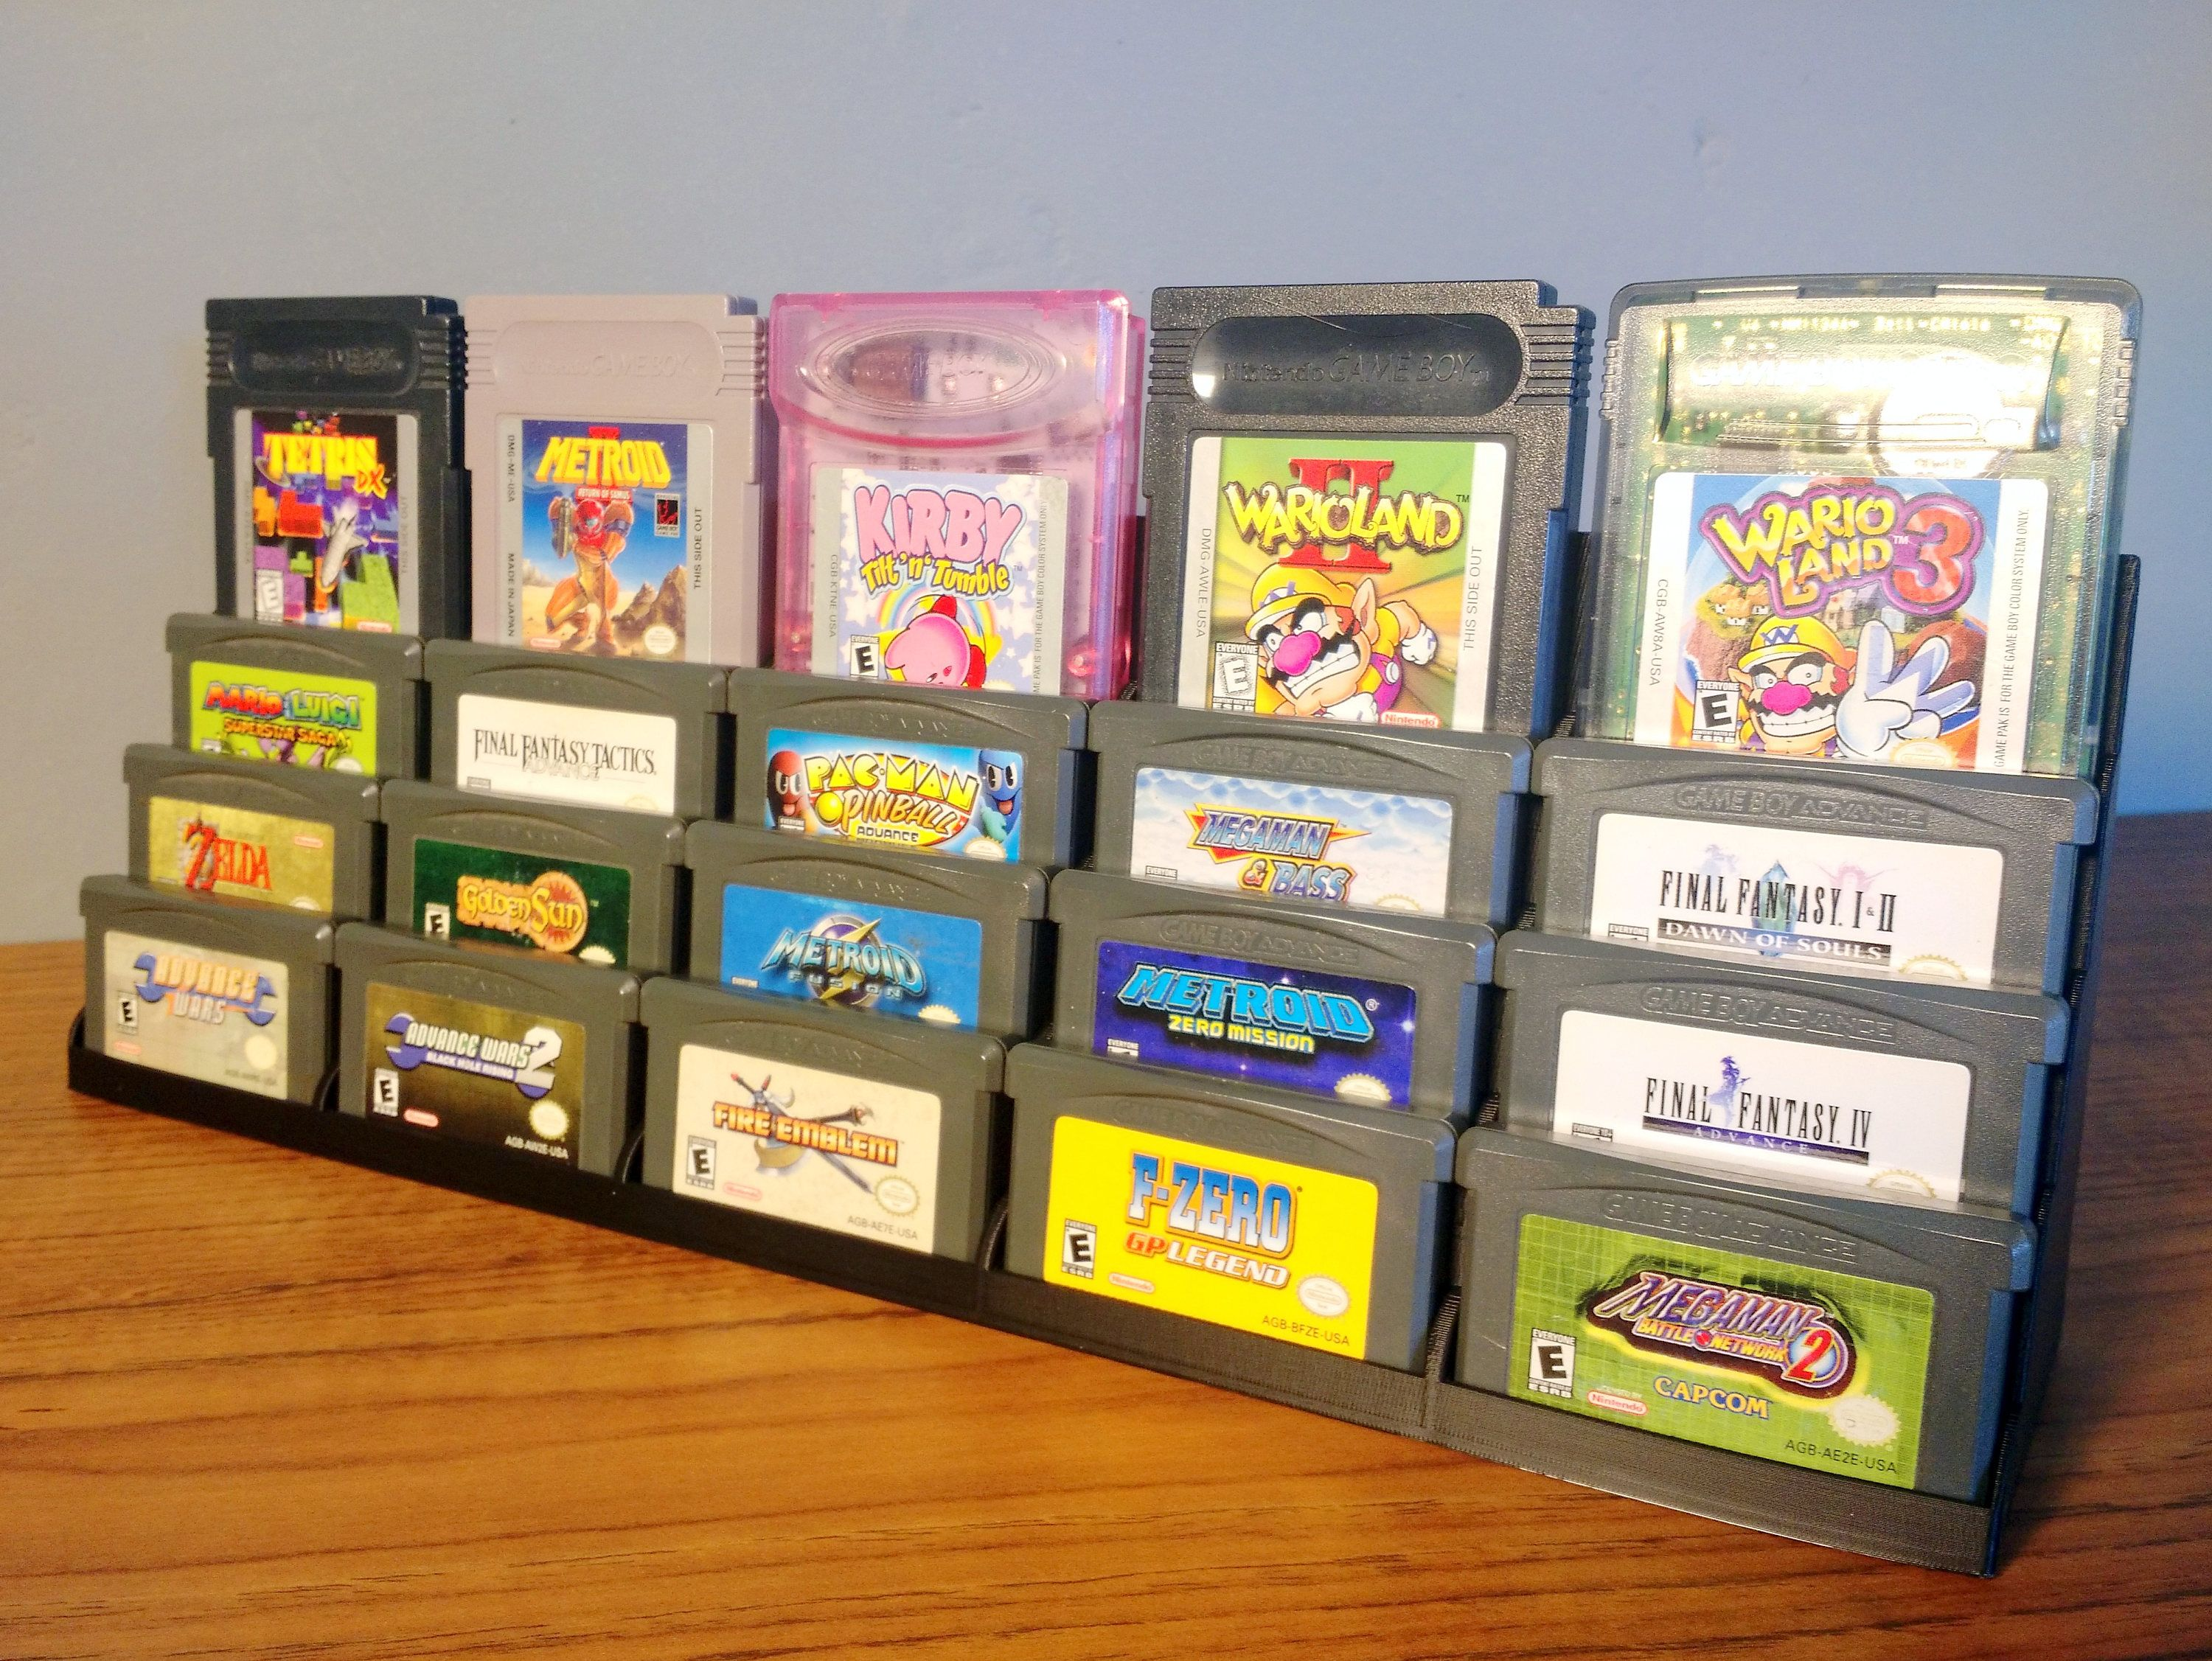 Gameboy Advance Display Beleuchtung Gba Cartridge Display Tower For Nintendo Gameboy Advance